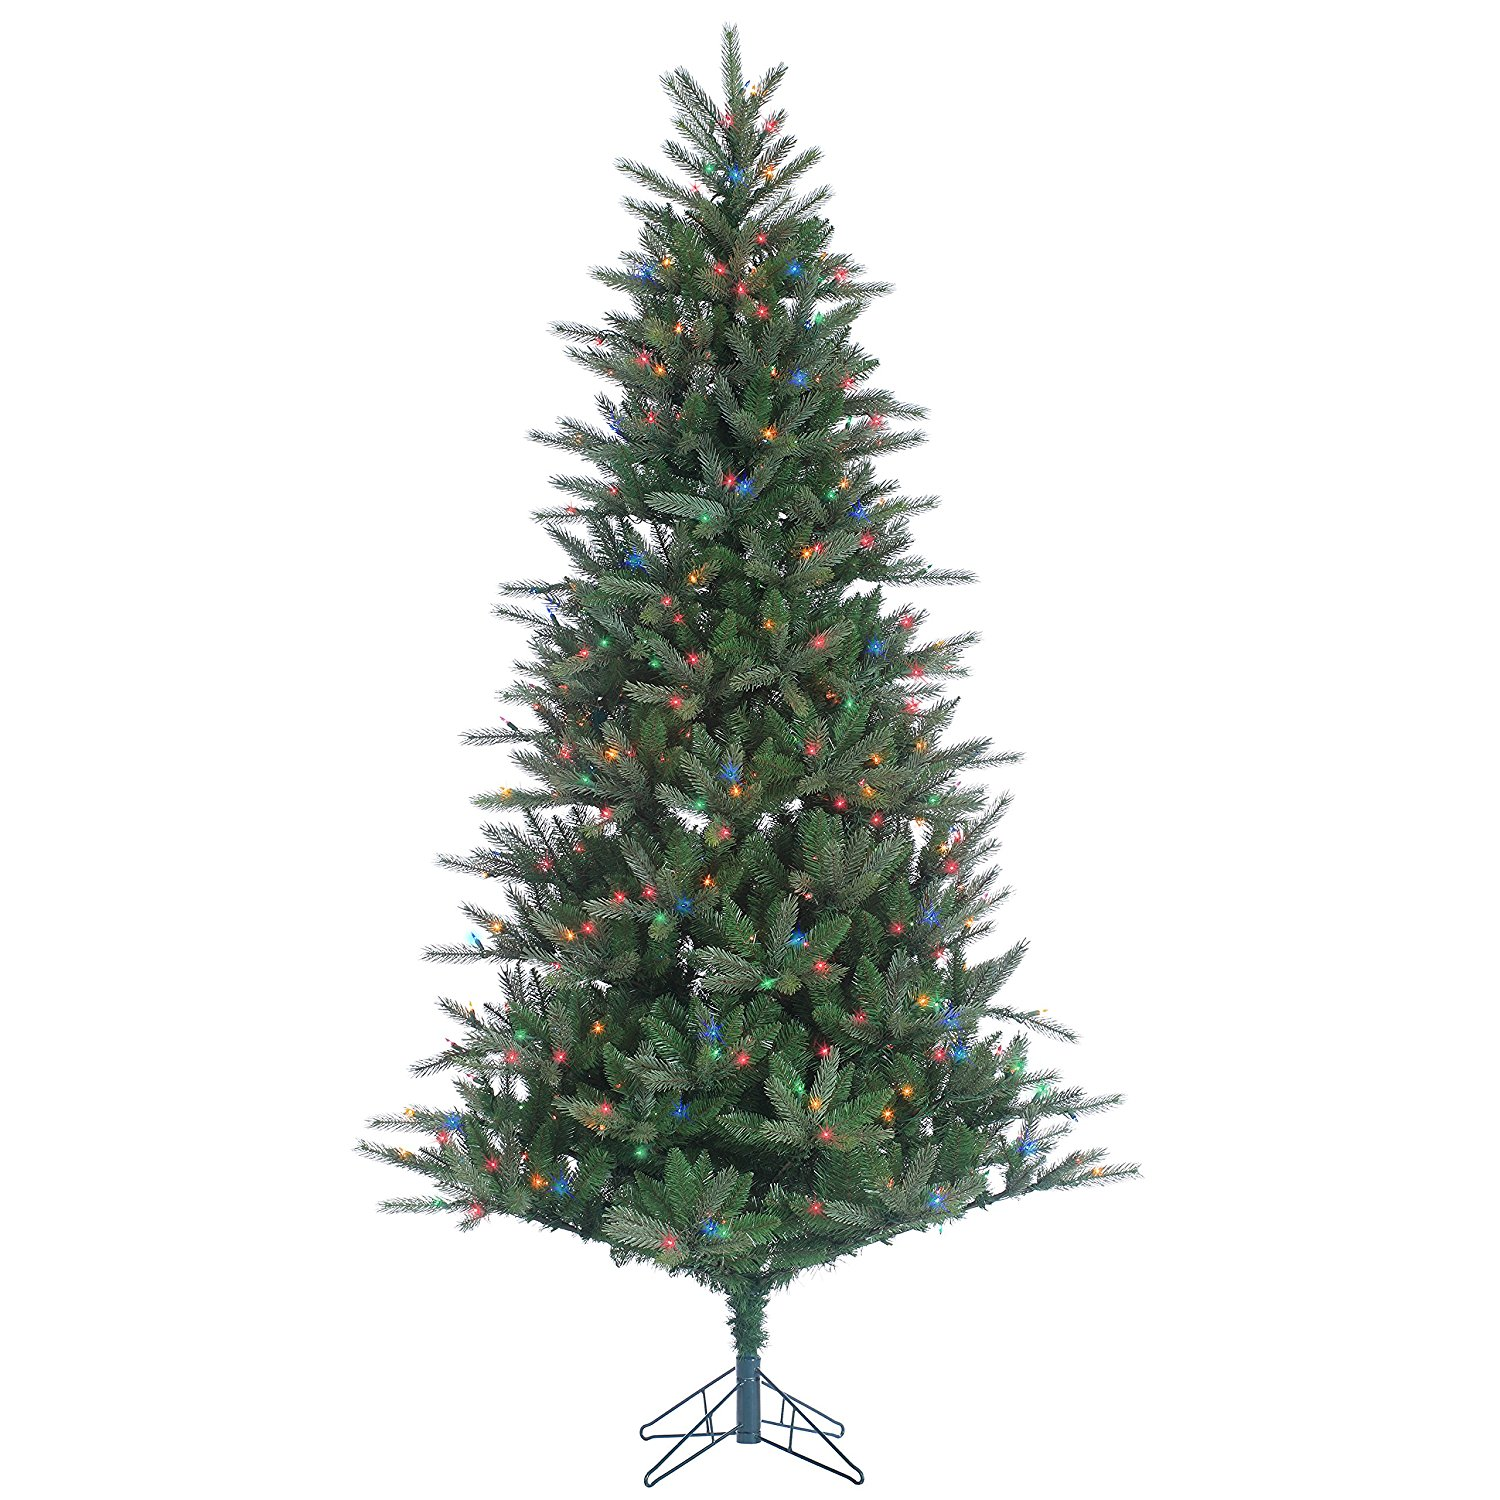 7.5 ft. Franklin Spruce Natural Cut Pre-lit Christmas Tree by Sterling Tree Company